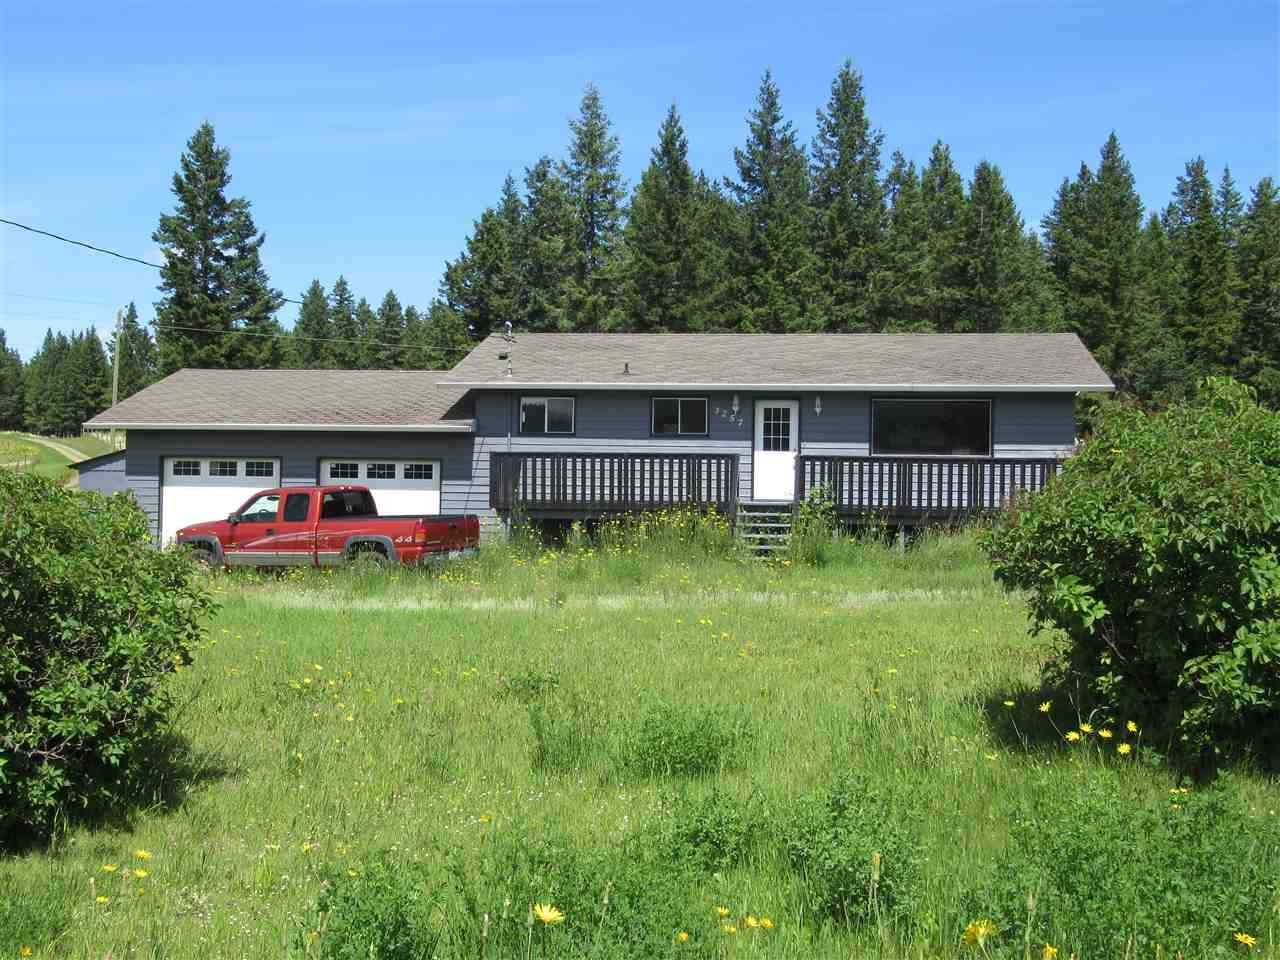 Photo 28: Photos: 3257 HINSCHE Road in Williams Lake: Williams Lake - Rural East House for sale (Williams Lake (Zone 27))  : MLS®# R2477340